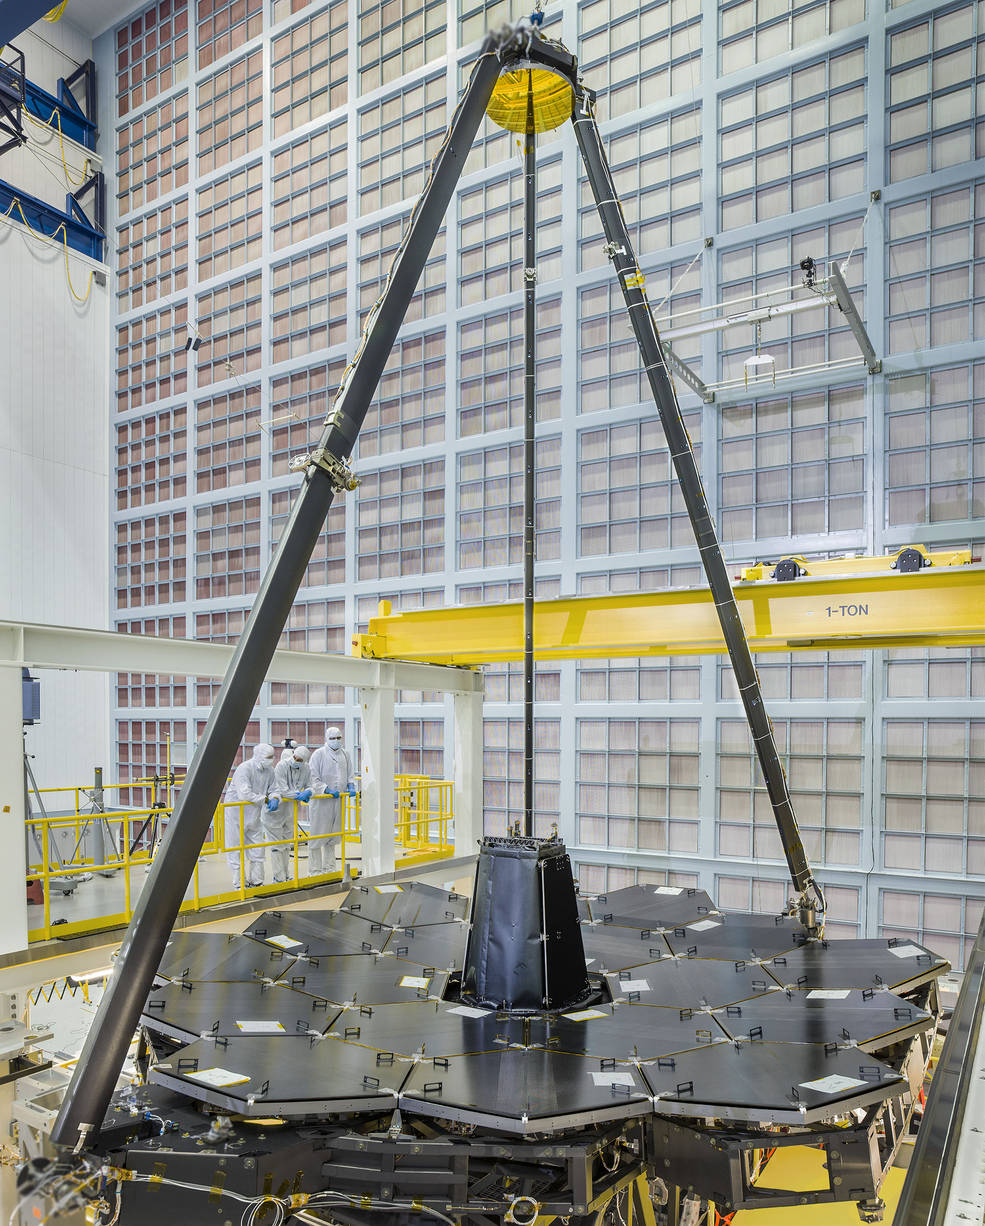 NASA's James Webb Space Telescope completed primary mirror sits in the cleanroom at NASA Goddard Space Flight Center, and supported over it on the tripod is the secondary mirror. Credits: NASA/Chris Gunn